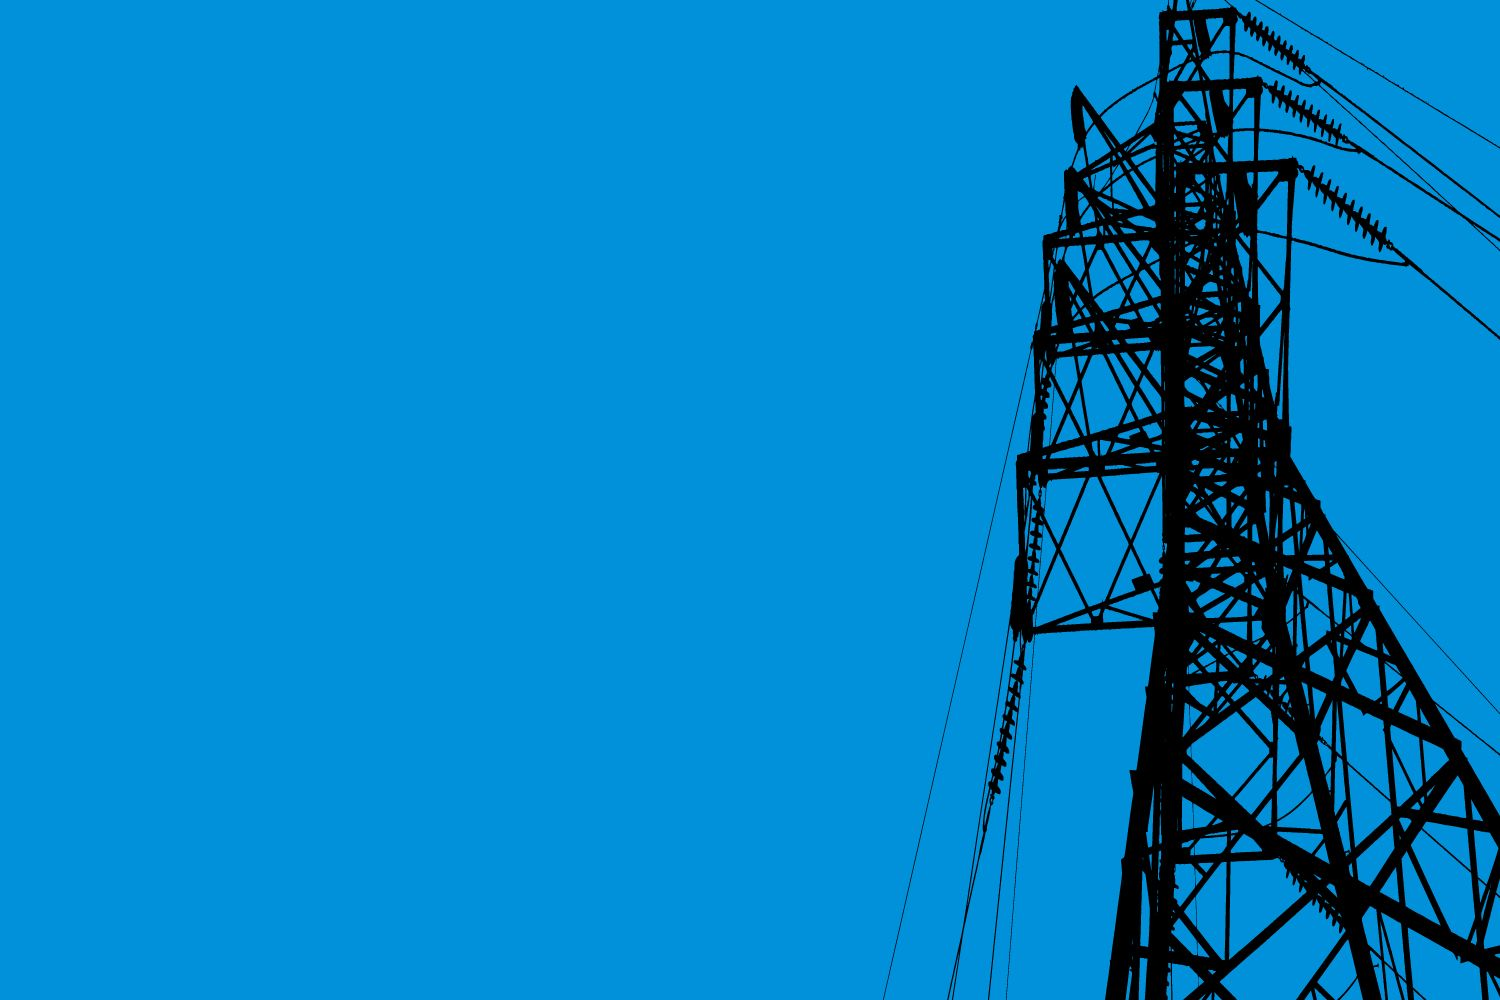 Electricity tower with blue sky in background